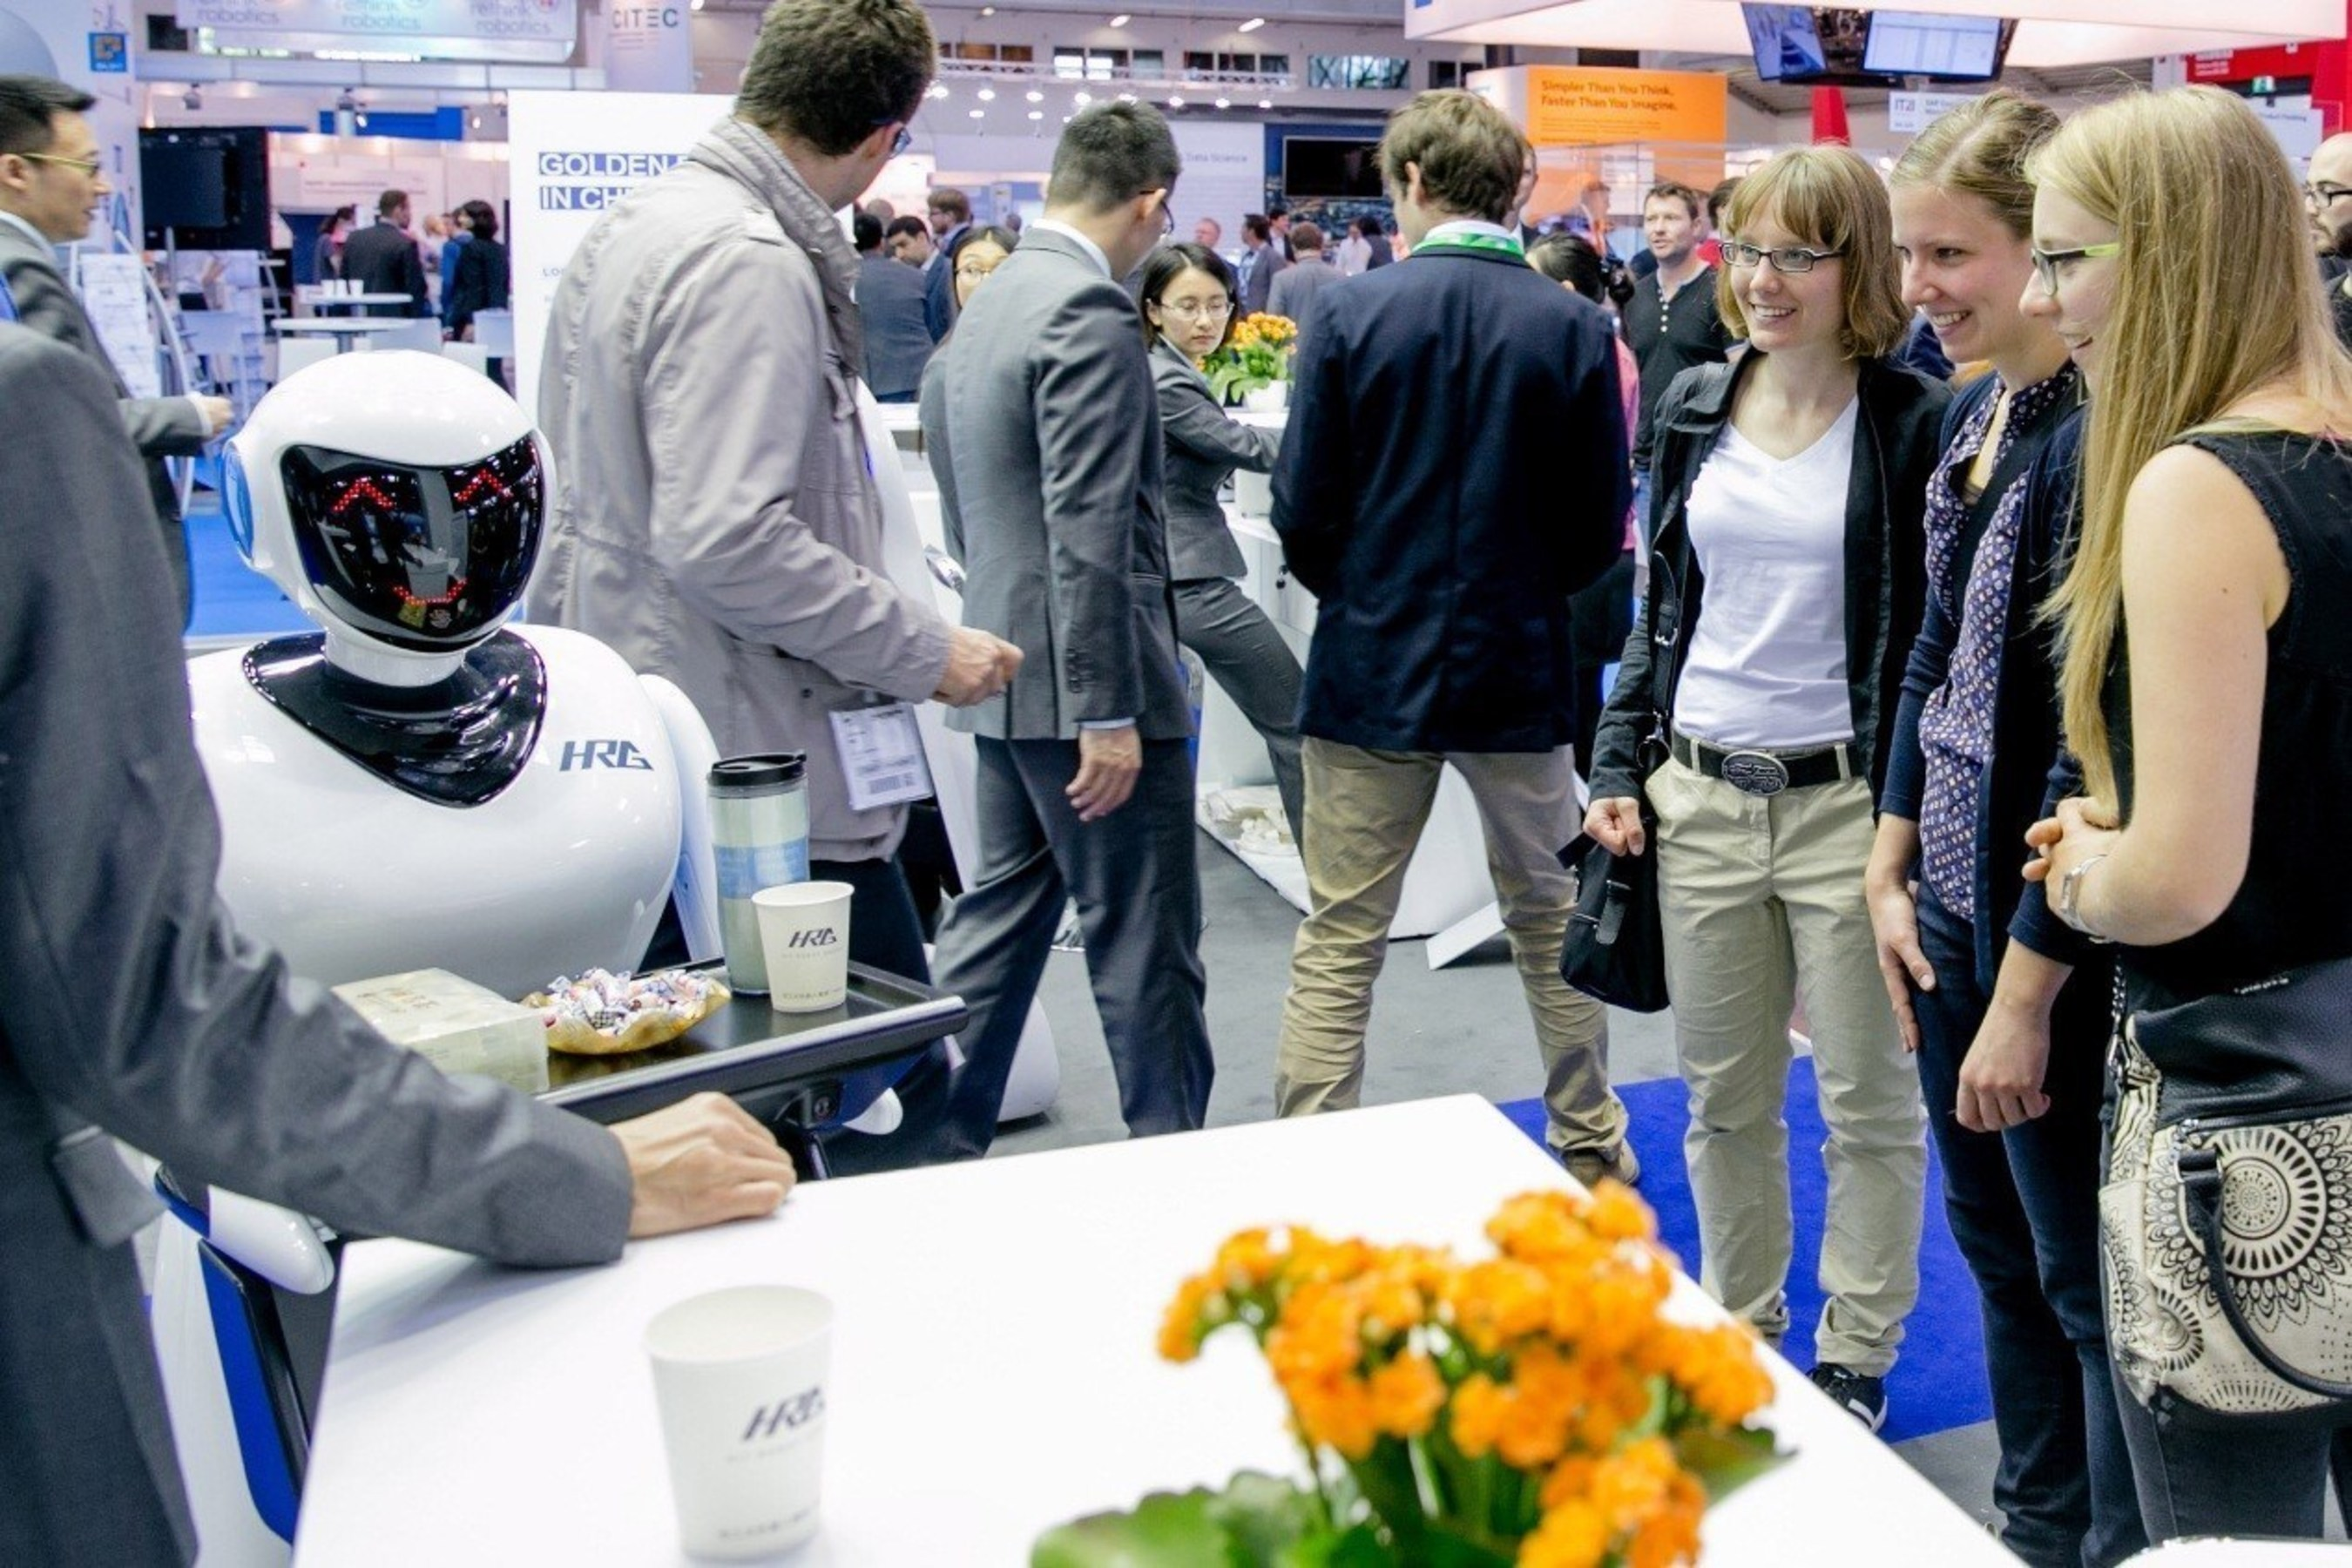 HRG displaying its catering robot, Xiao Zhi, at its booth at Automatica 2016